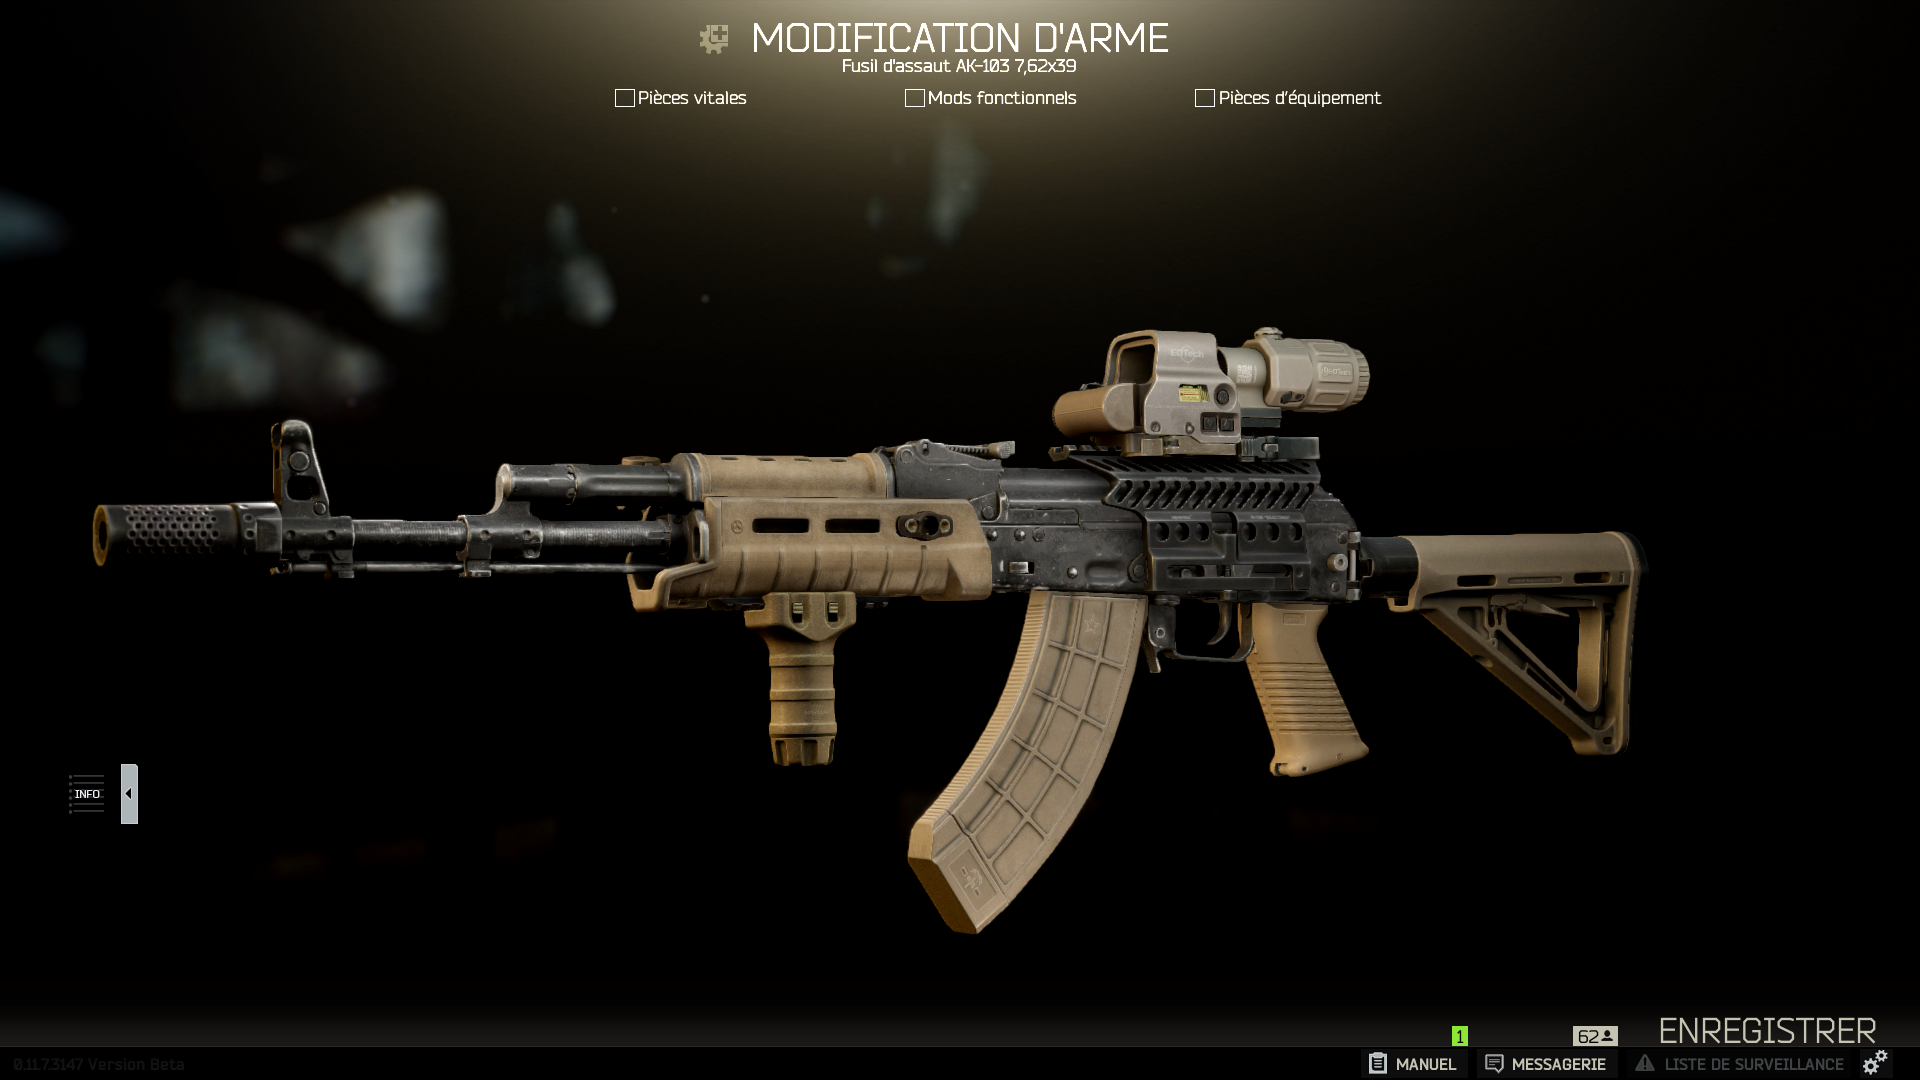 Weapon Modification: Show Off Your Work